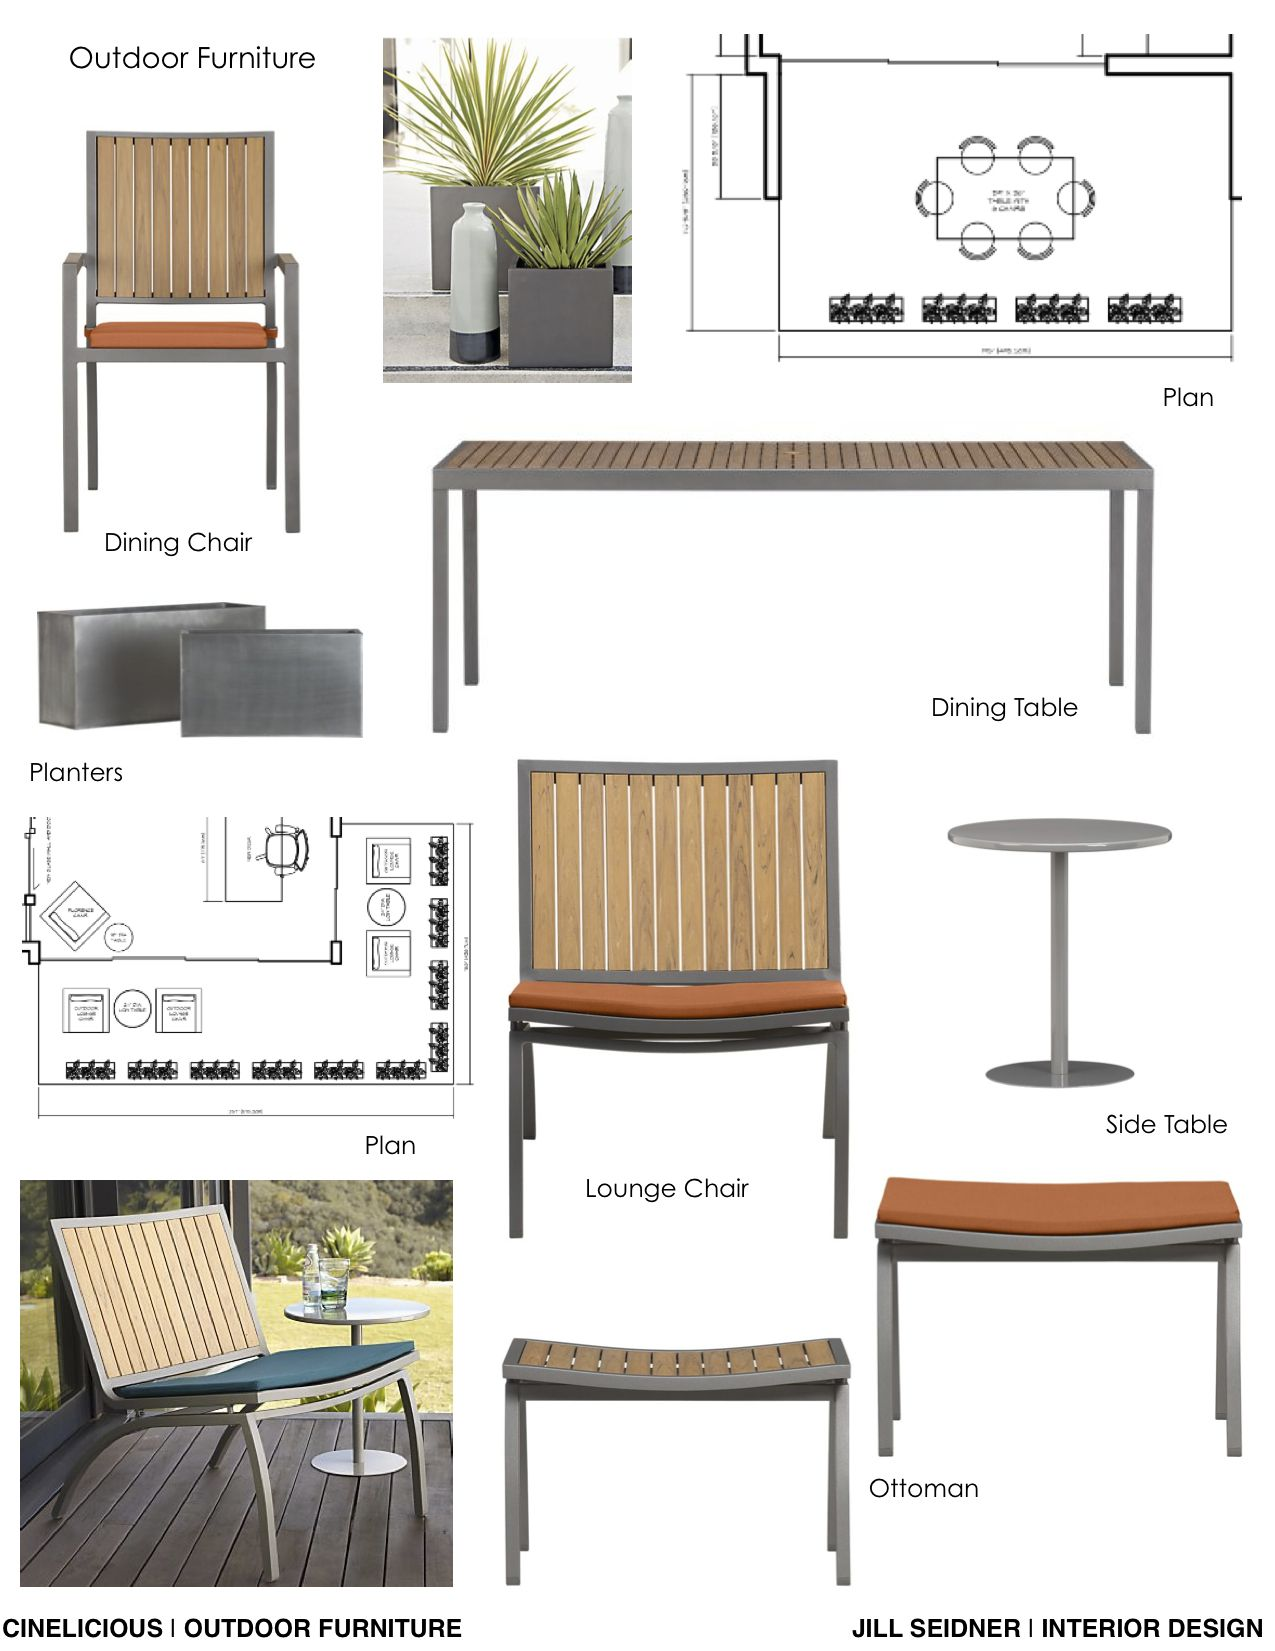 Cinelicious Office Hollywood Outdoor Furnishings Concept ...